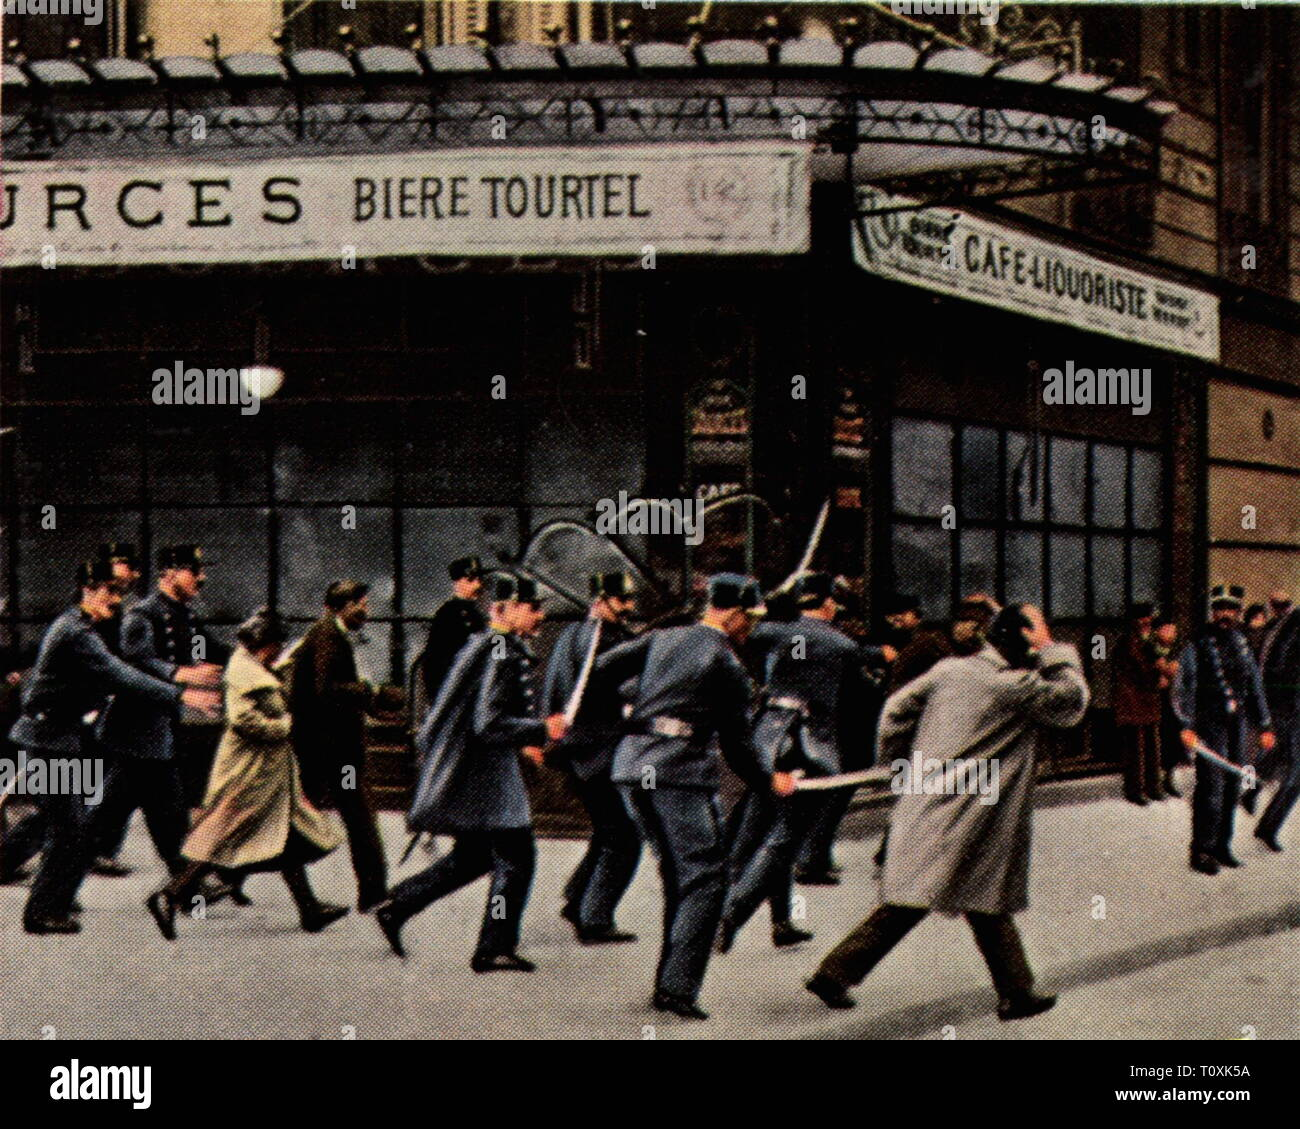 Paris riots of 6.2.1934, police in action, coloured photograph, cigarette card, series 'Die Nachkriegszeit', 1935, police operation, police operations, demonstrators, demonstrator, tumult, affray, demonstration, demo, demonstrations, demos, protest, protests, corruption, corruptions, political crisis, politics, policy, France, Third Republic, people, 20th century, 1930s, riot, riots, coloured, colored, post war period, post-war period, post-war years, post-war era, historic, historical, Additional-Rights-Clearance-Info-Not-Available - Stock Image